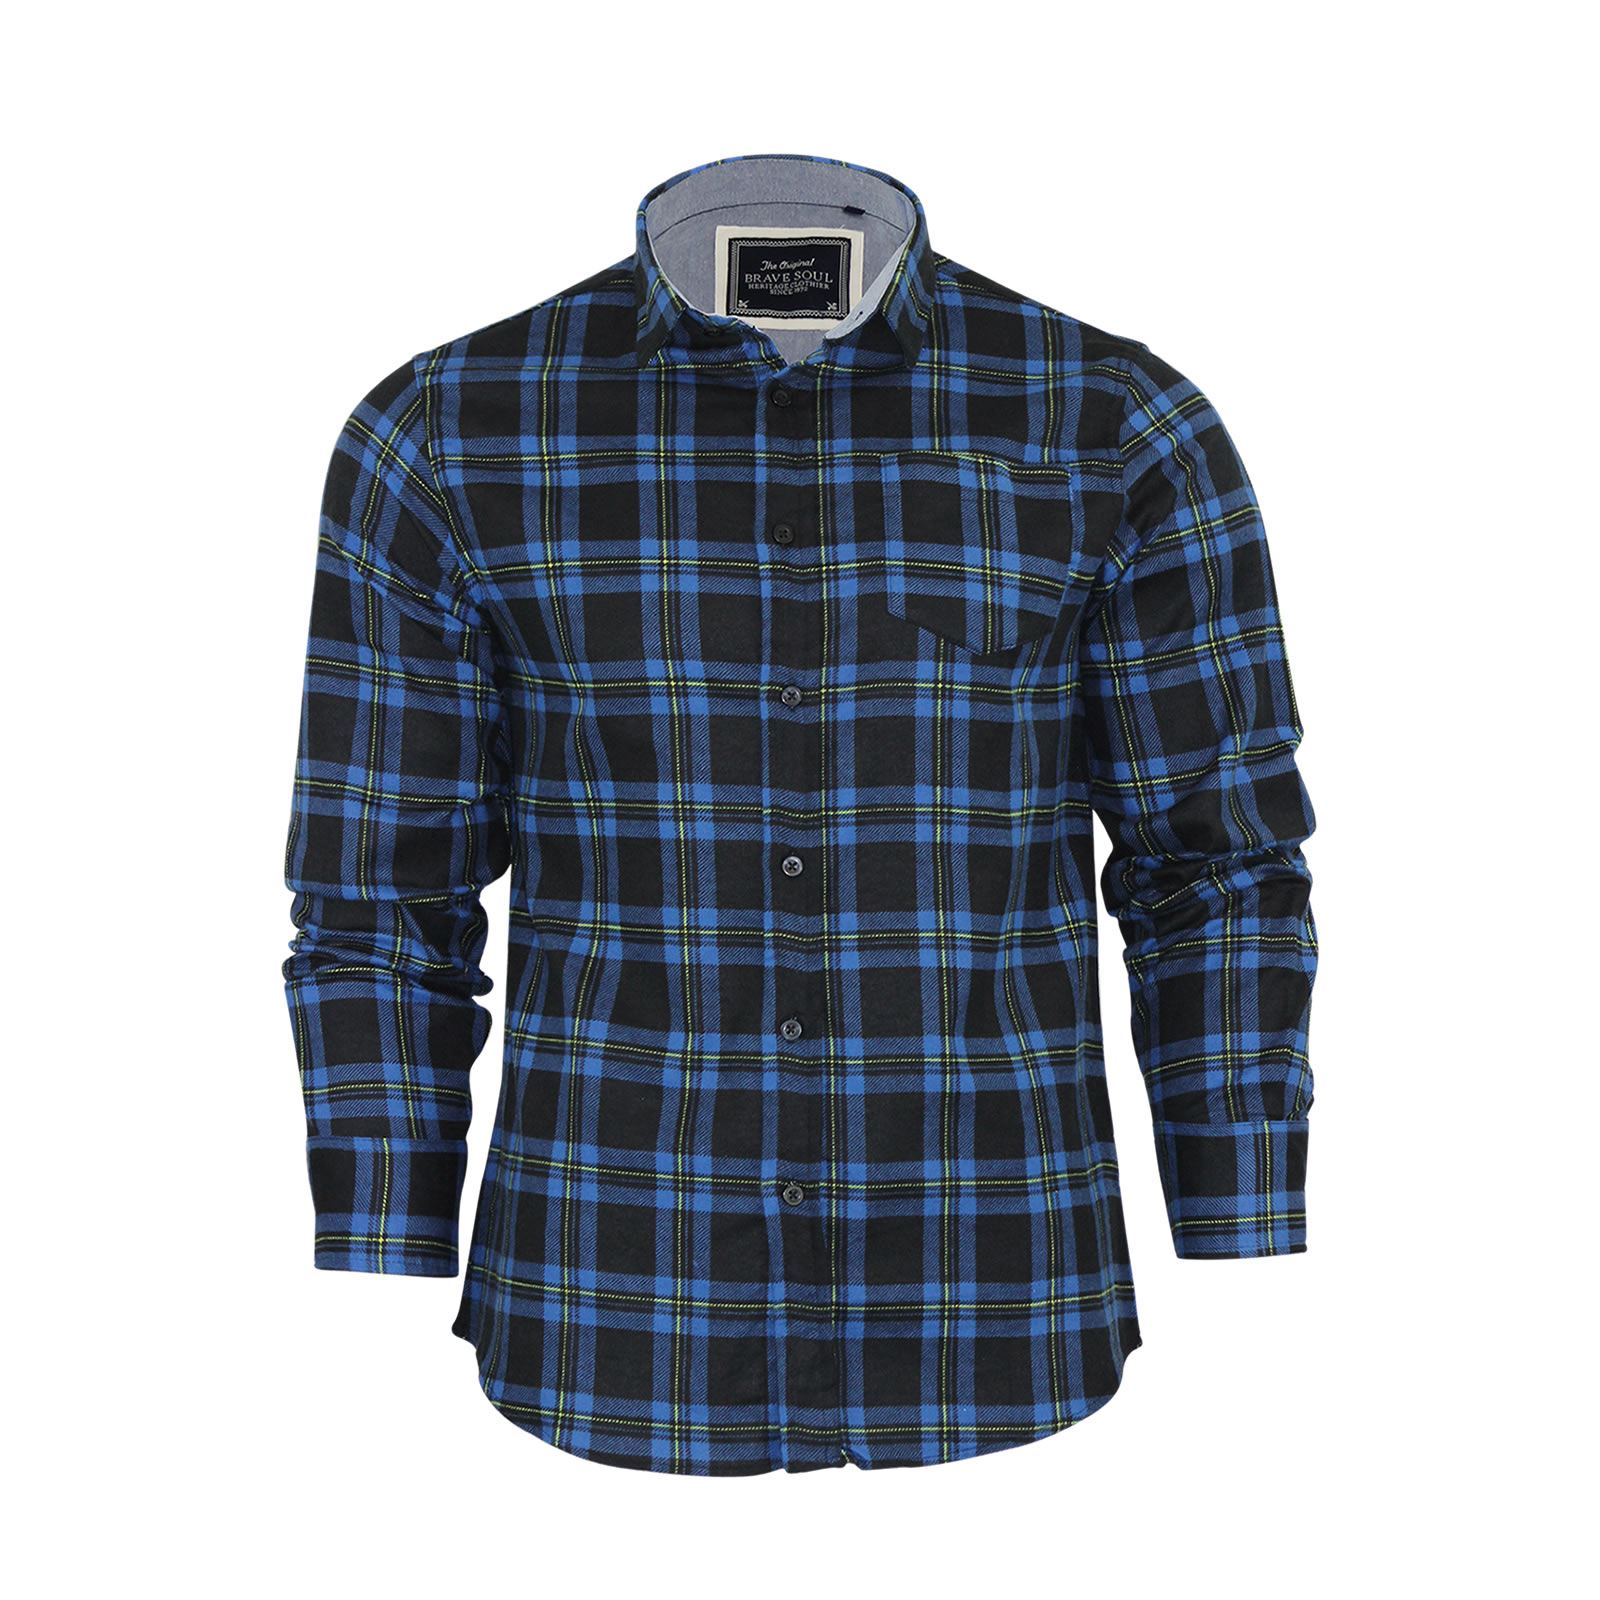 Brave-Soul-Mens-Check-Shirt-Flannel-Brushed-Cotton-Long-Sleeve-Casual-Top thumbnail 20